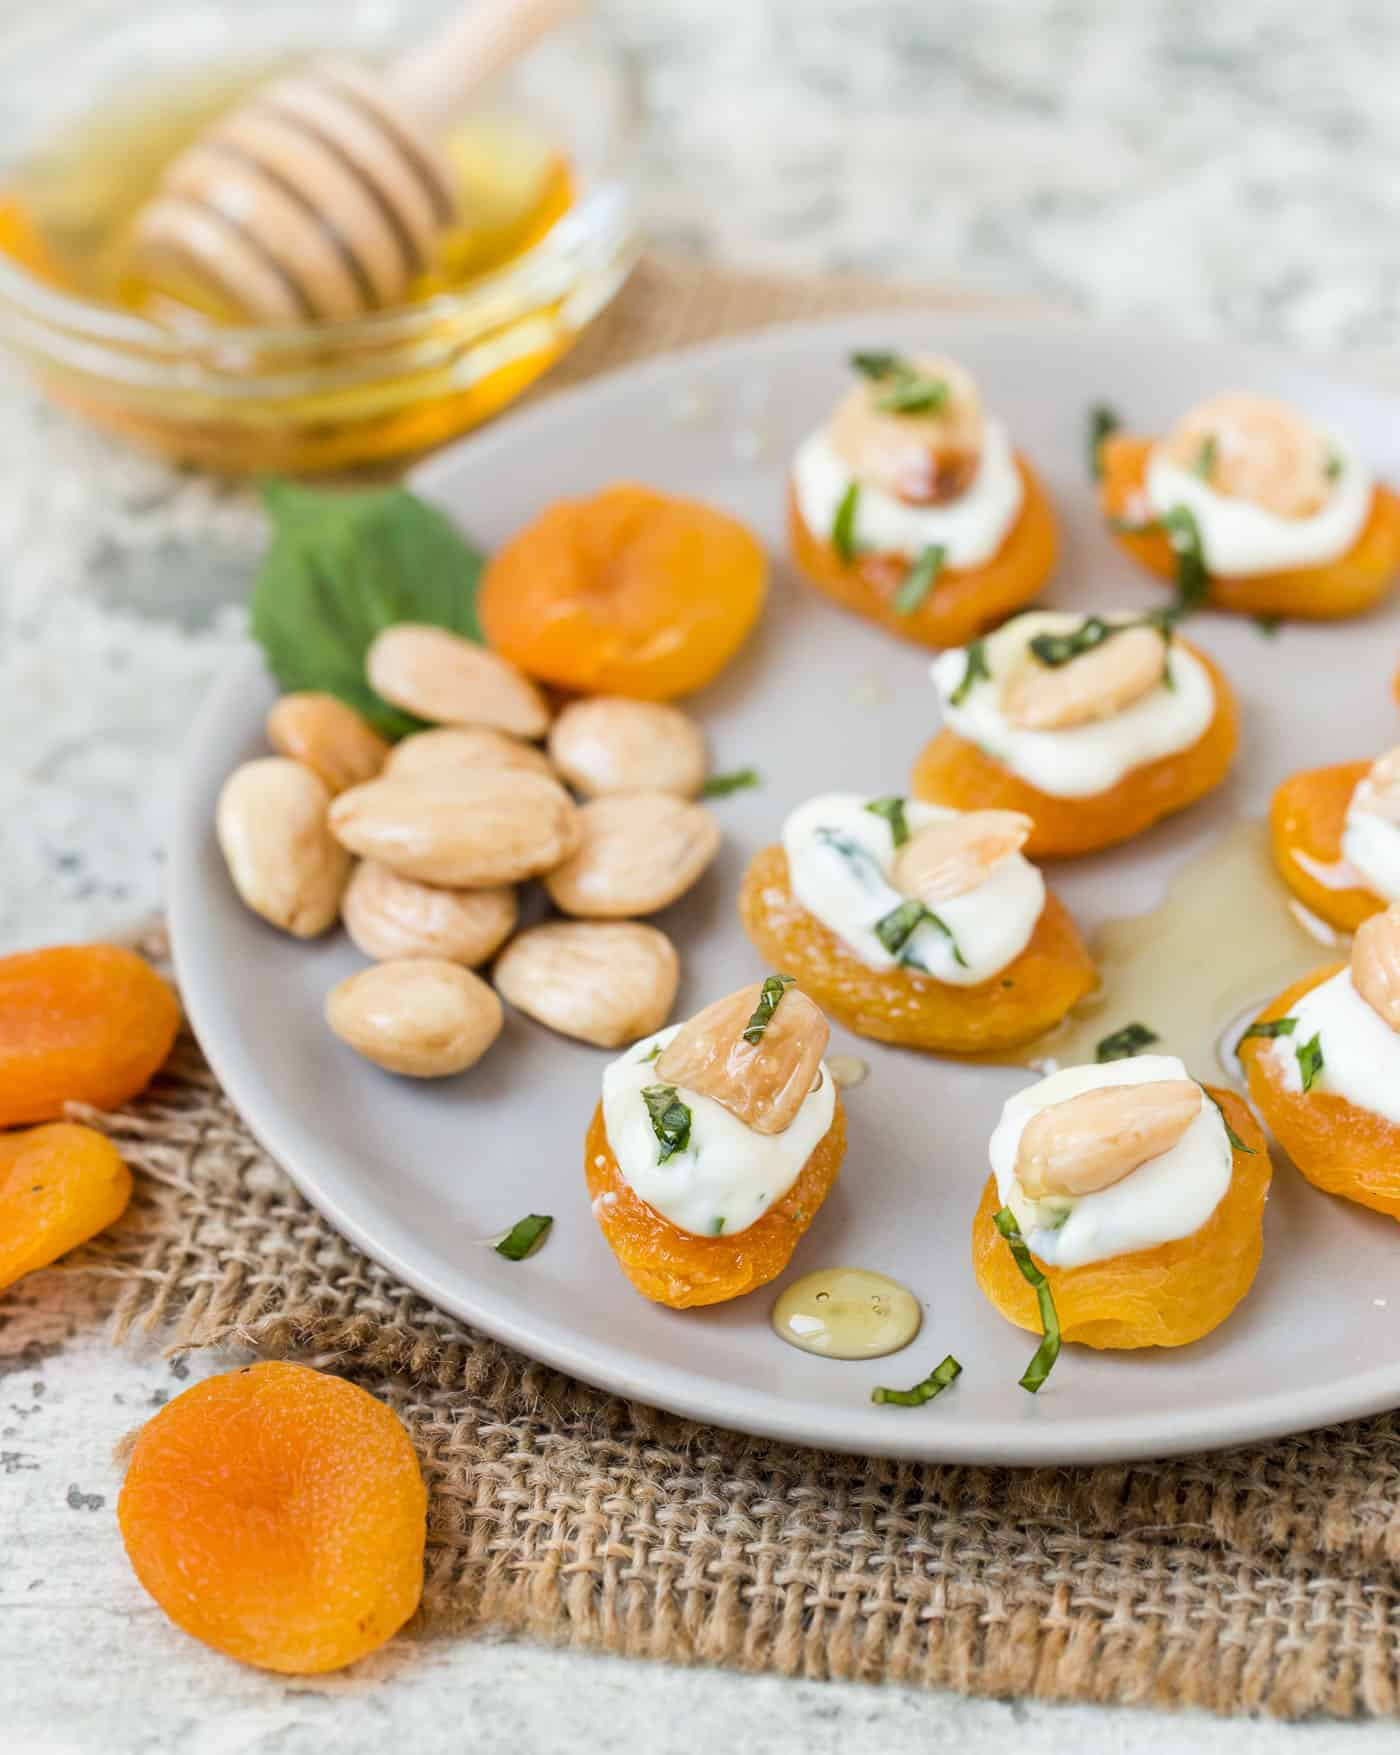 Gray plate filled with indivdual stuffed apricots with goat cheese, basil and marcona almonds.